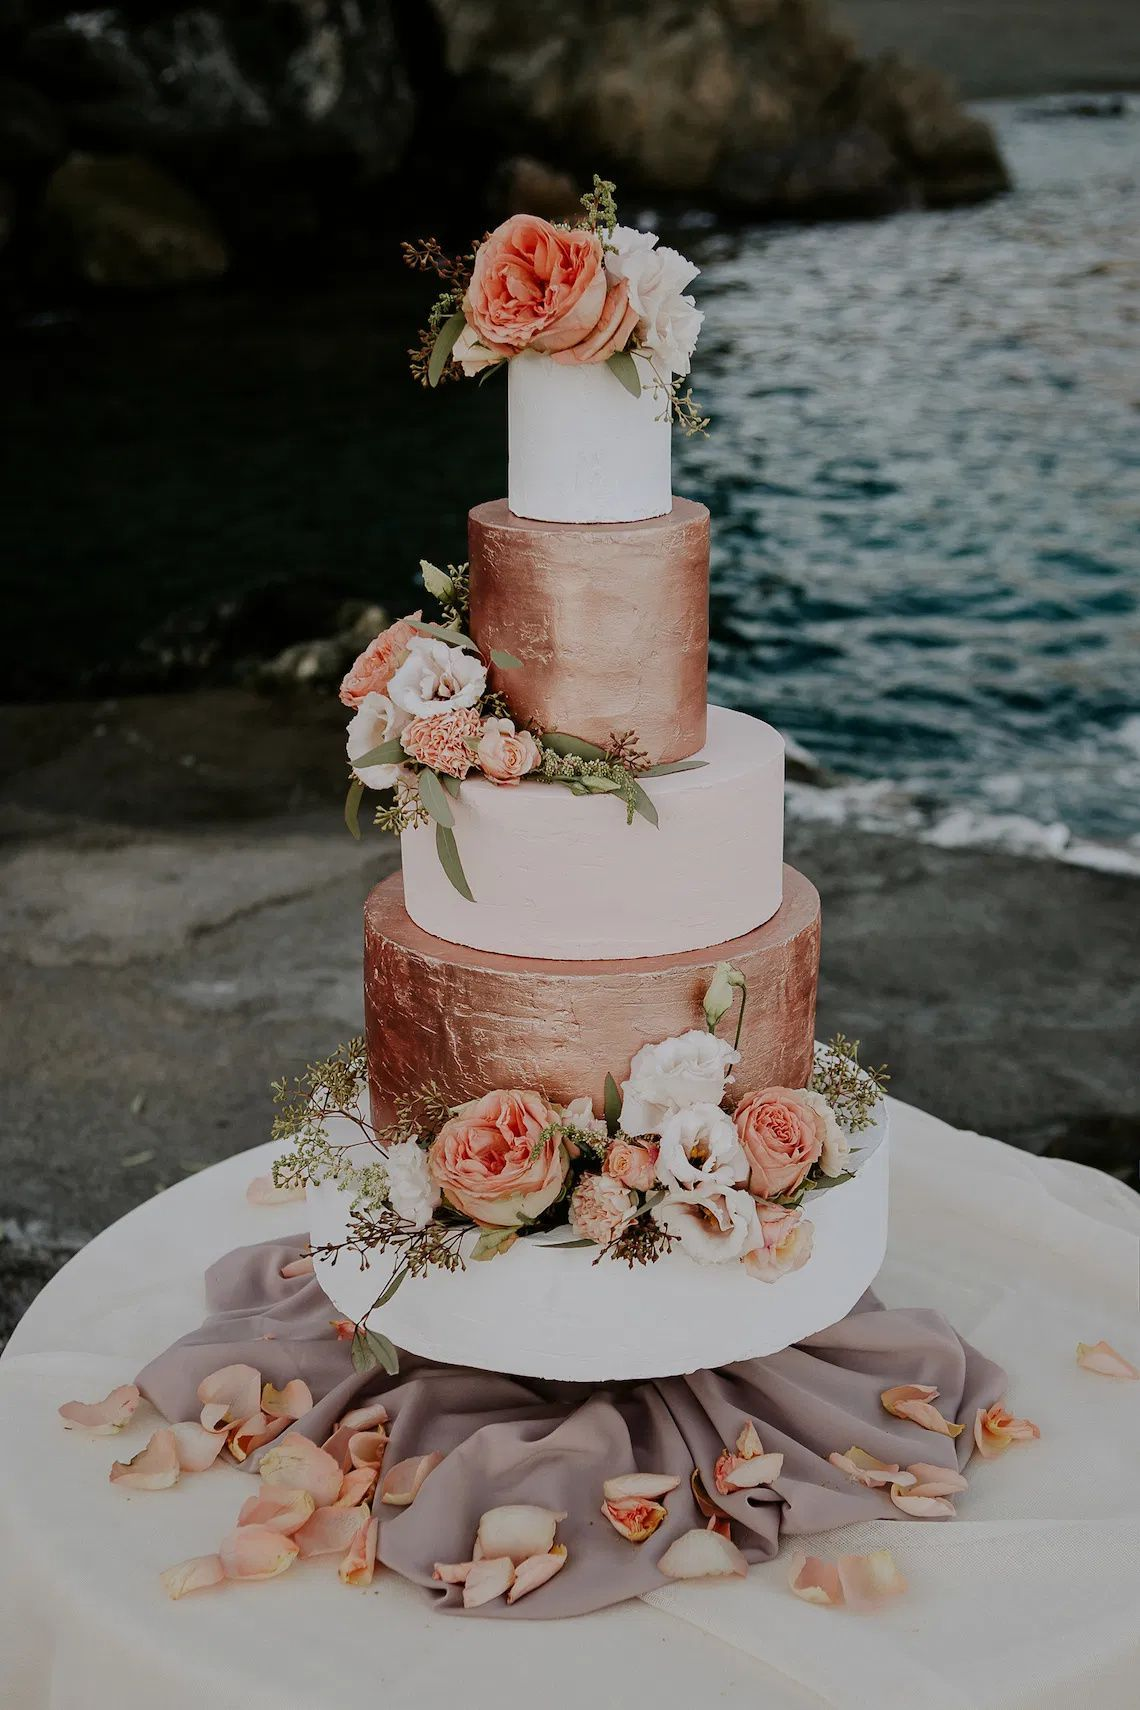 10 Tips For Making Your Own Wedding Cake In 2020 Rose Gold Wedding Cakes Pretty Wedding Cakes Classy Wedding Cakes